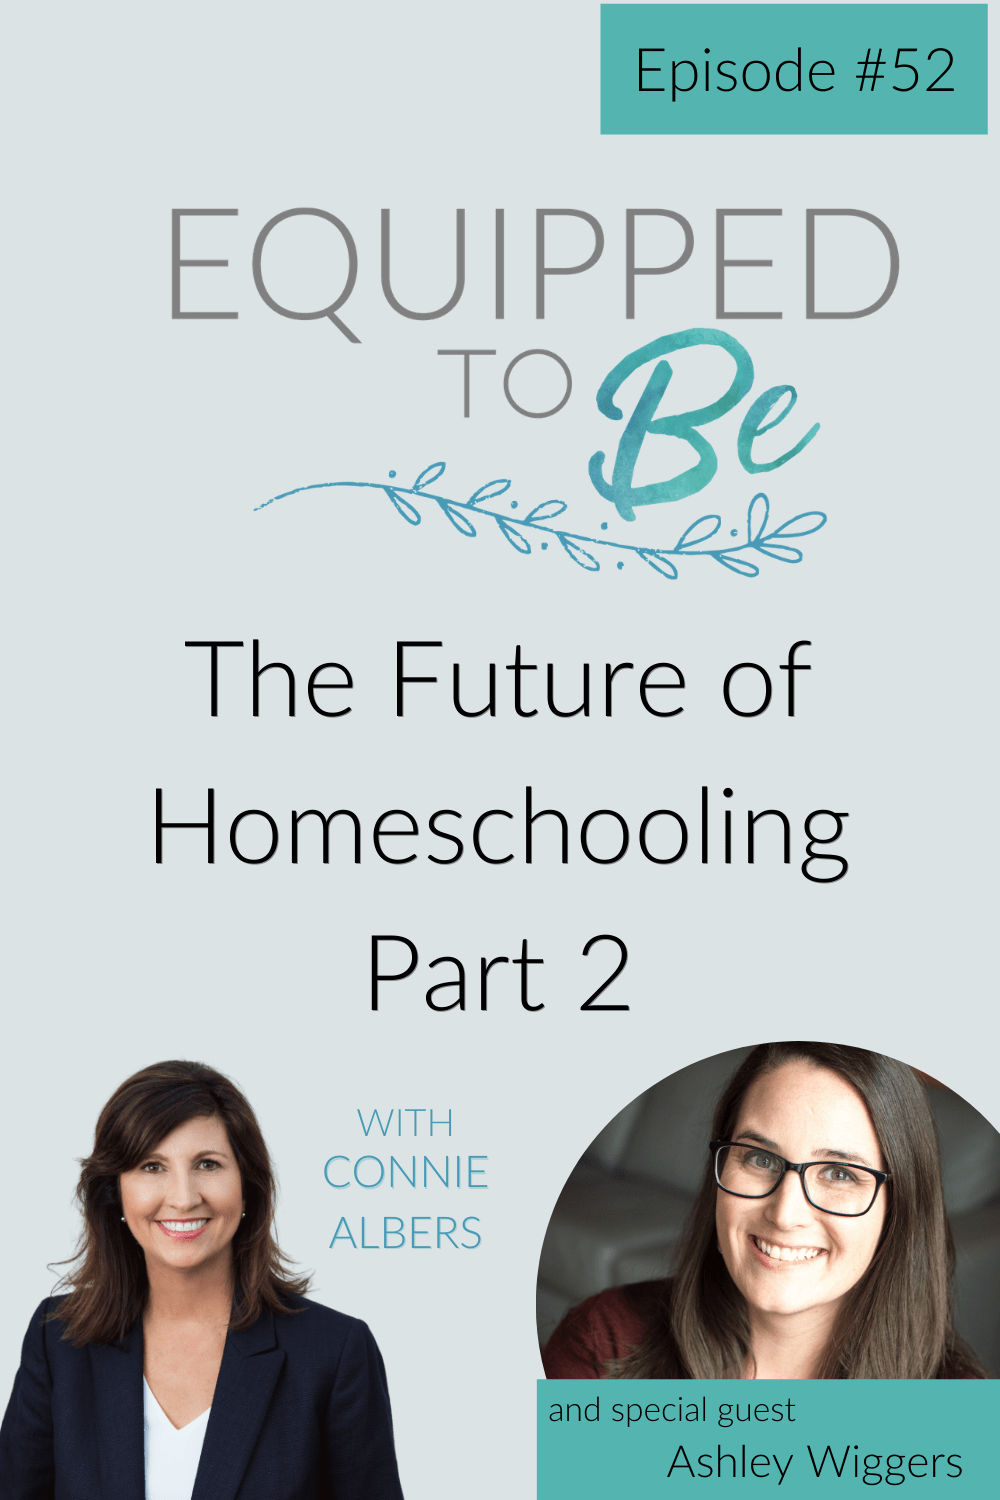 The Future of Homeschooling with Ashley Wiggers Part 2- ETB #52